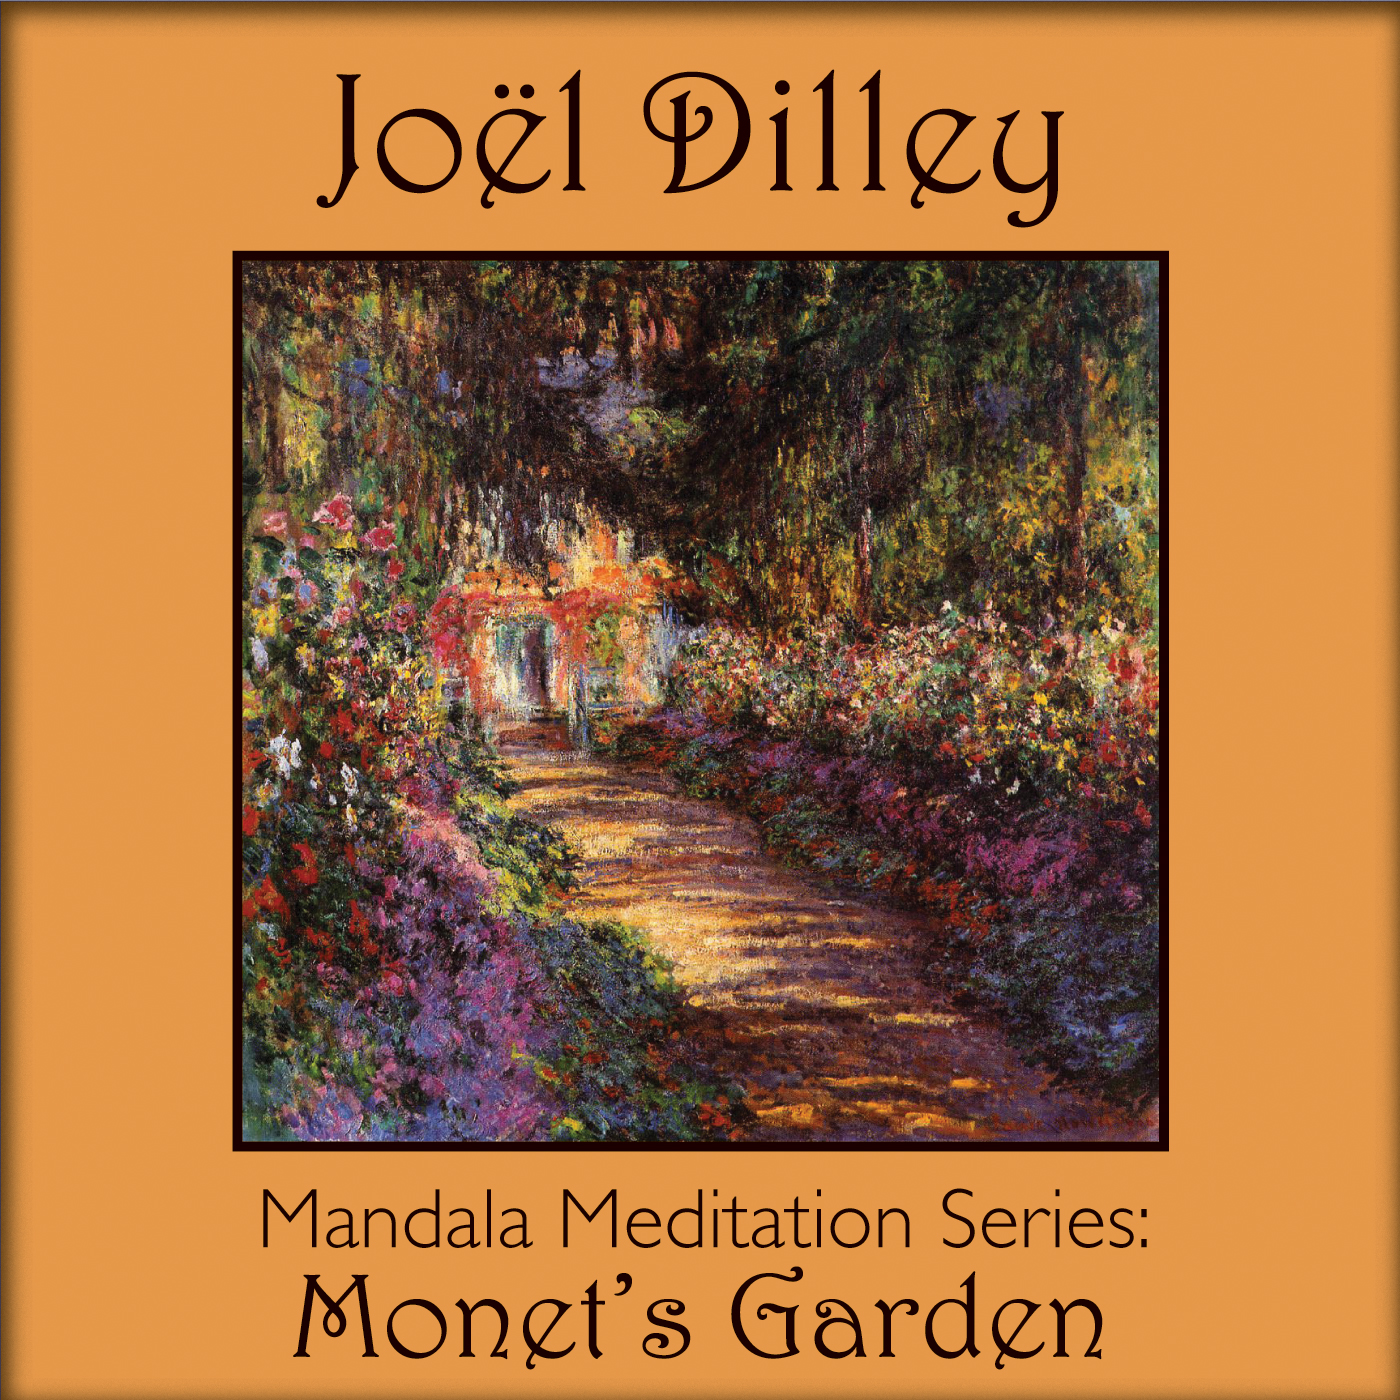 Mandala Meditation Series: Monet's Garden